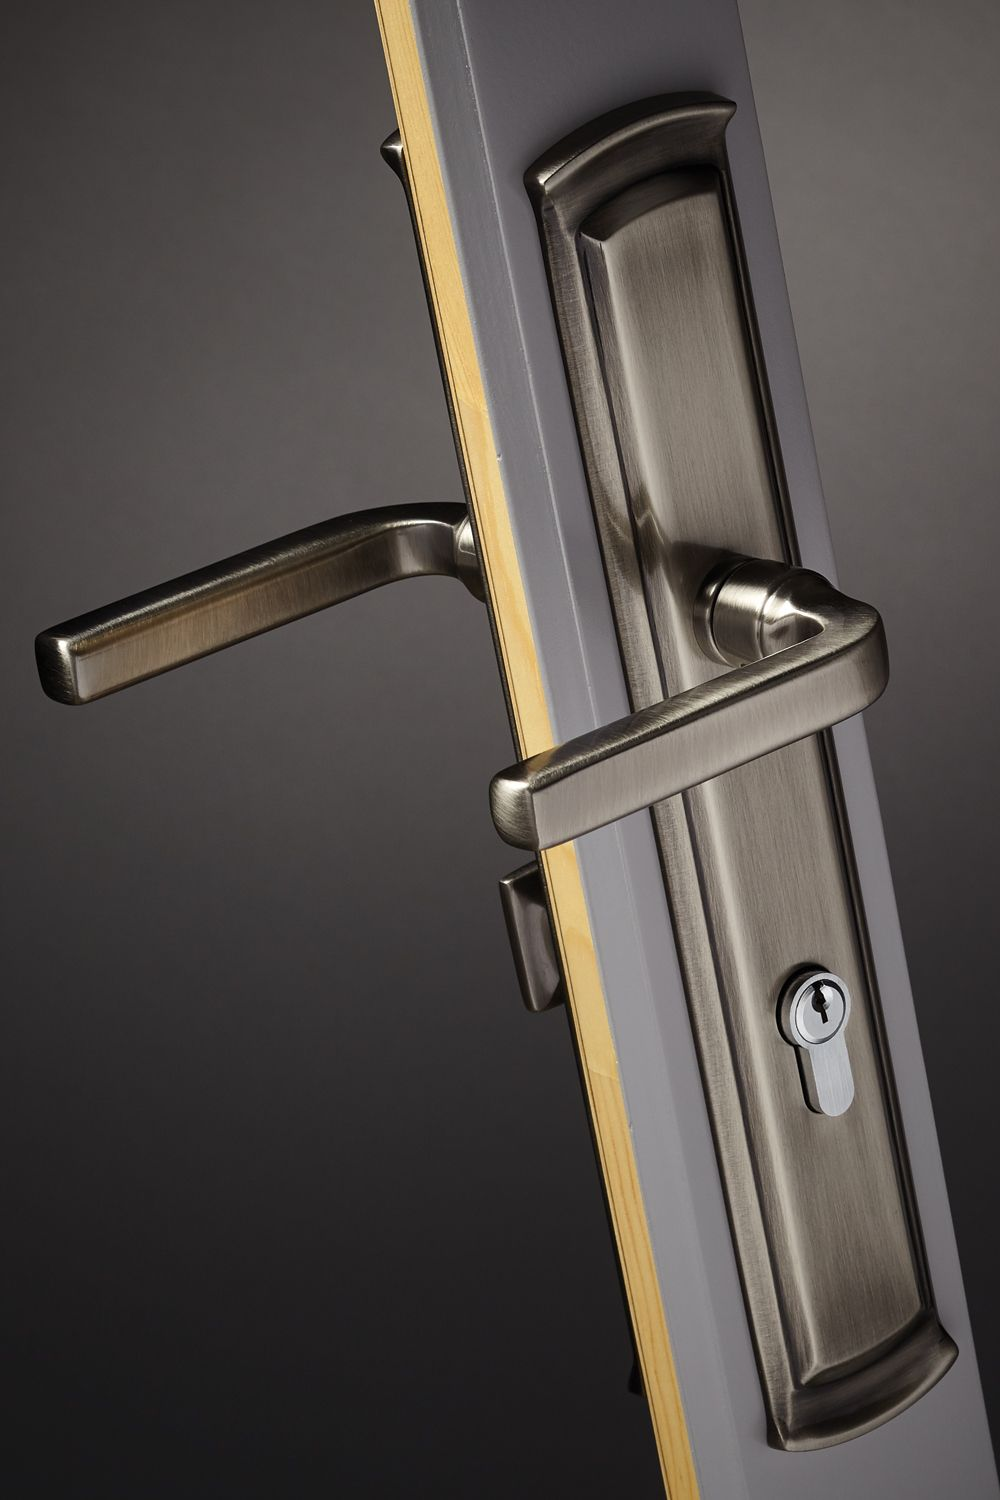 Incroyable 2017 Apr. 07   Baldwin For Elegant Entrances   Kolbe Entrance Doors Are  Available With An Even Greater Variety Of Handle Sets To Make Every Entry  ...